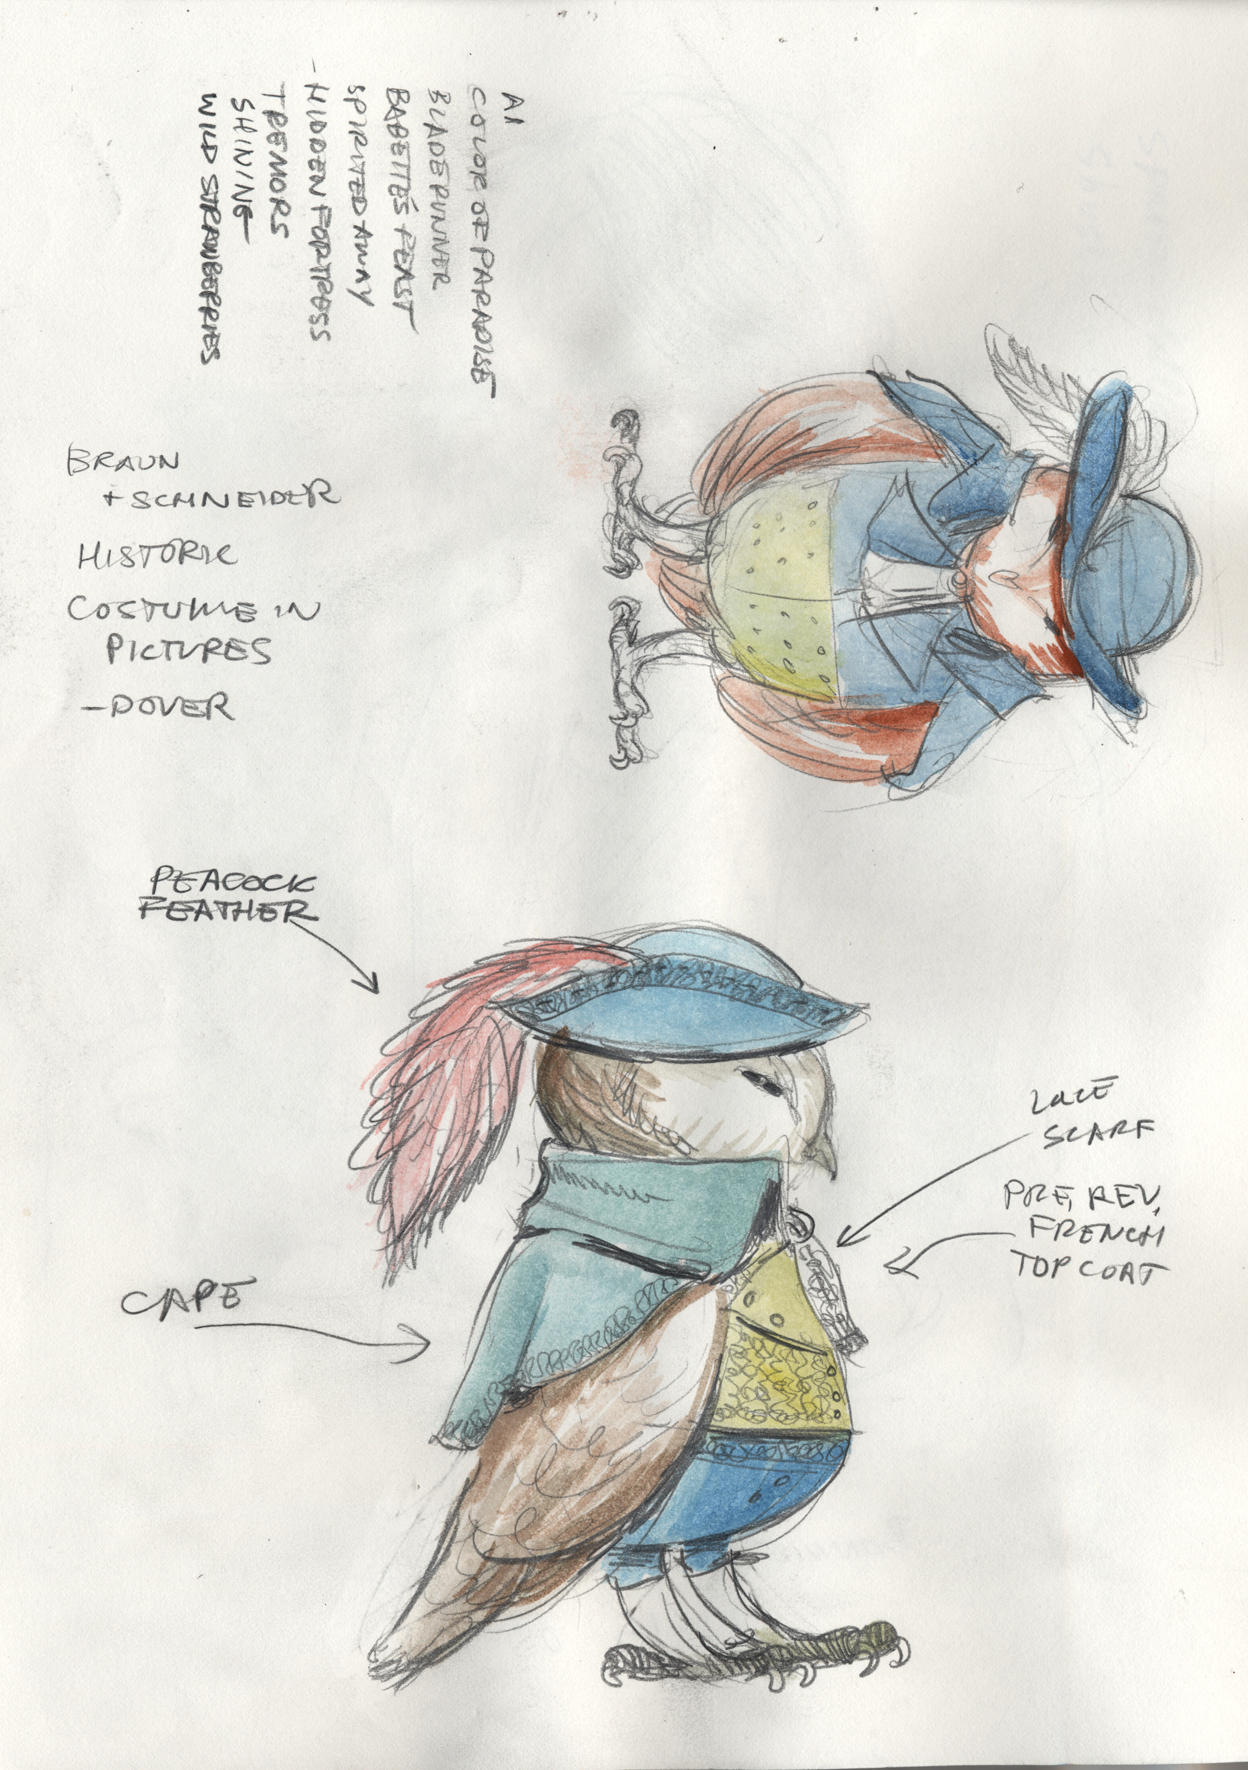 Costume design for the Tailor.